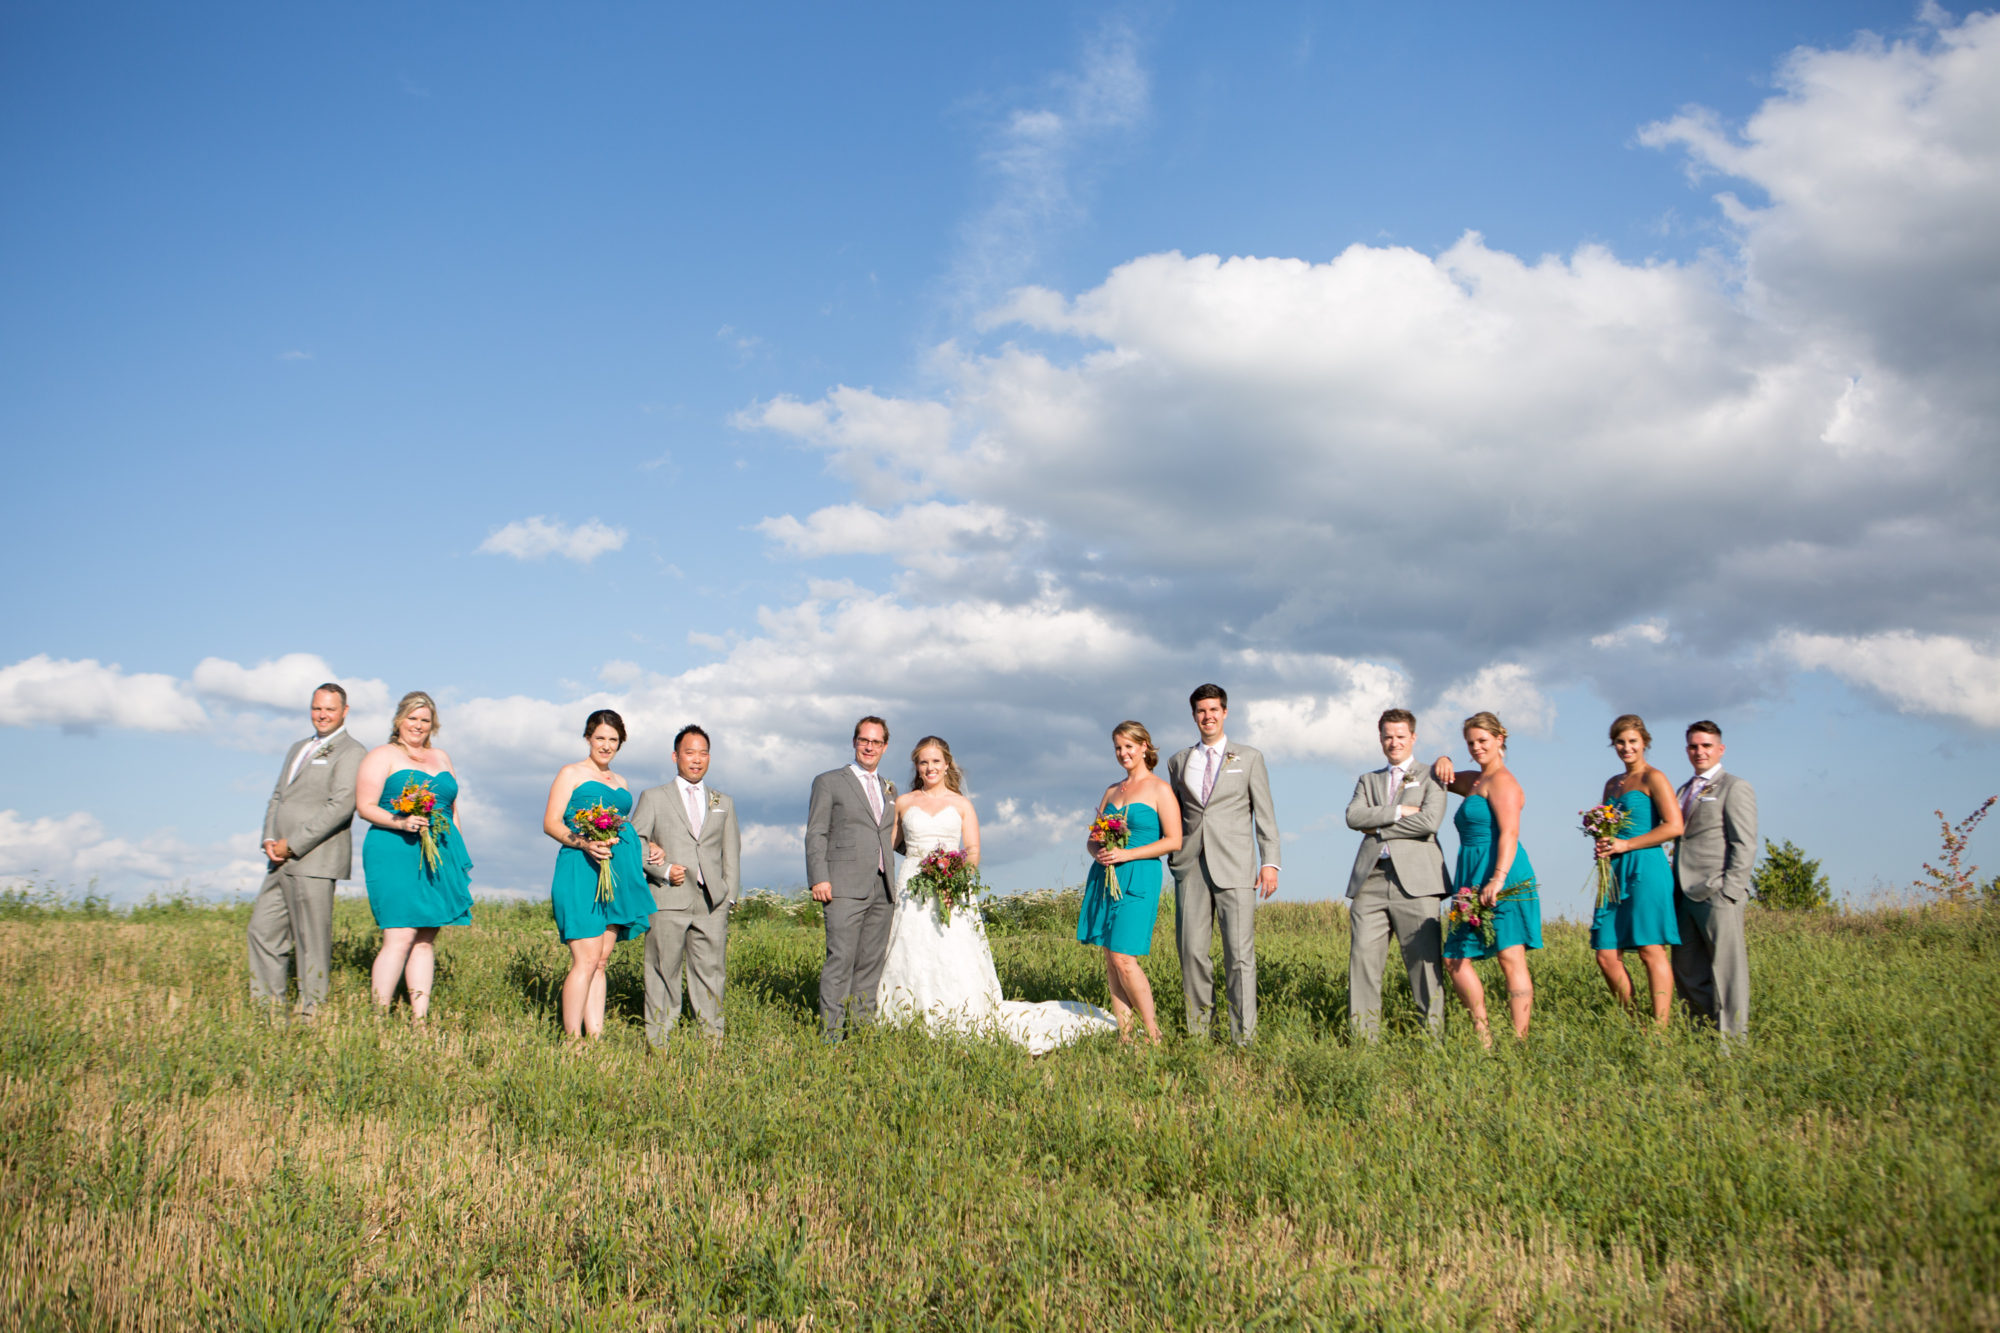 Bridal Party South Pond Farms Zsuzsi Pal Photography Wedding Field